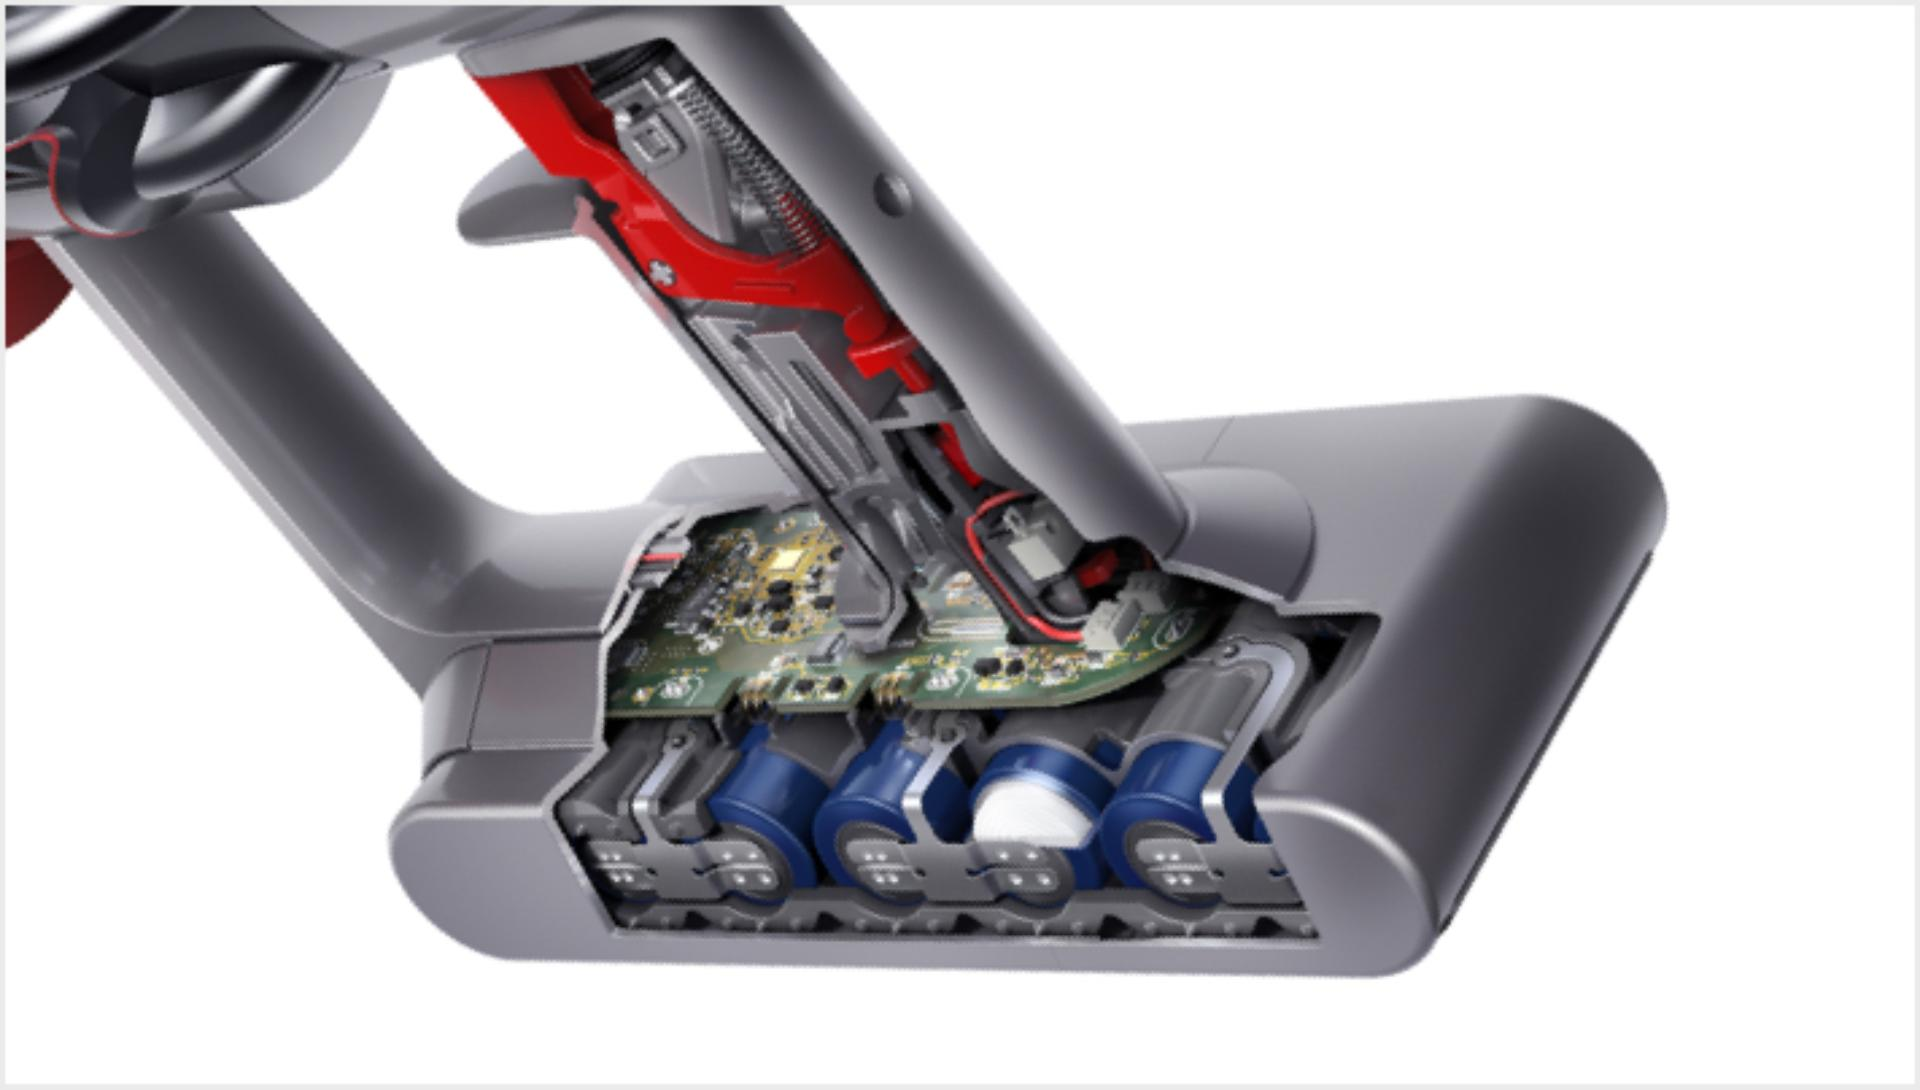 Cutaway of Dyson V11™ vacuum battery pack